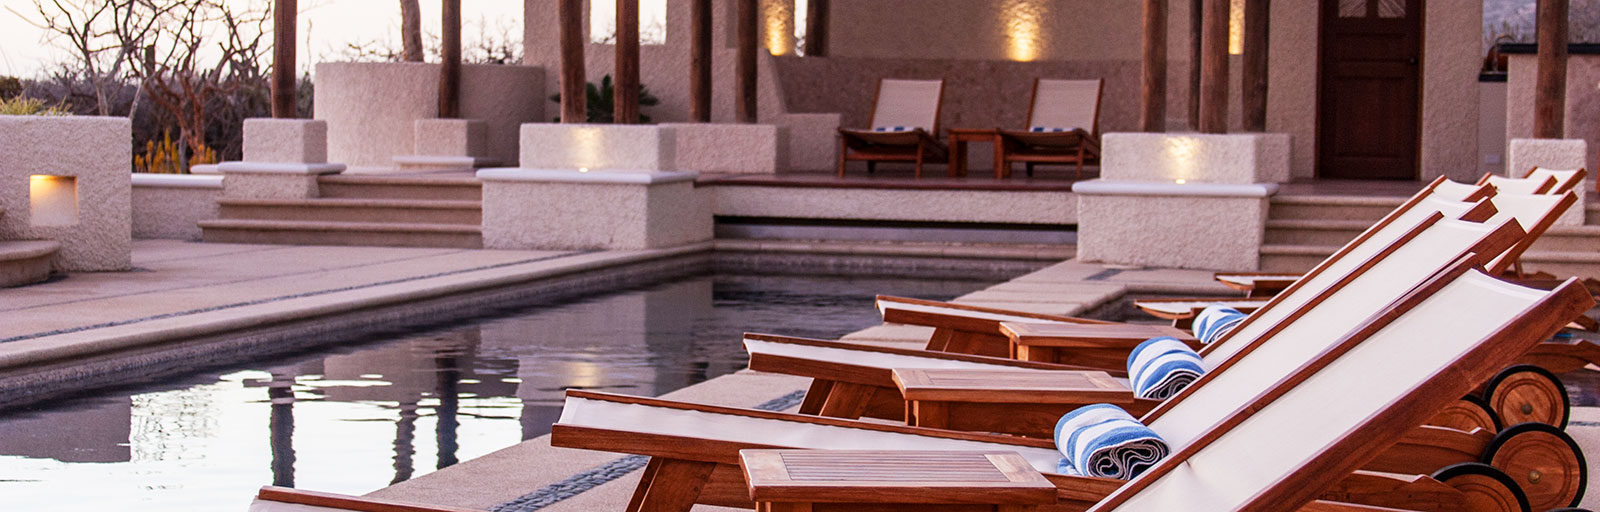 Mexico Yoga Retreats & Wellness Center: Chaise Lounges in the Swimming Pool